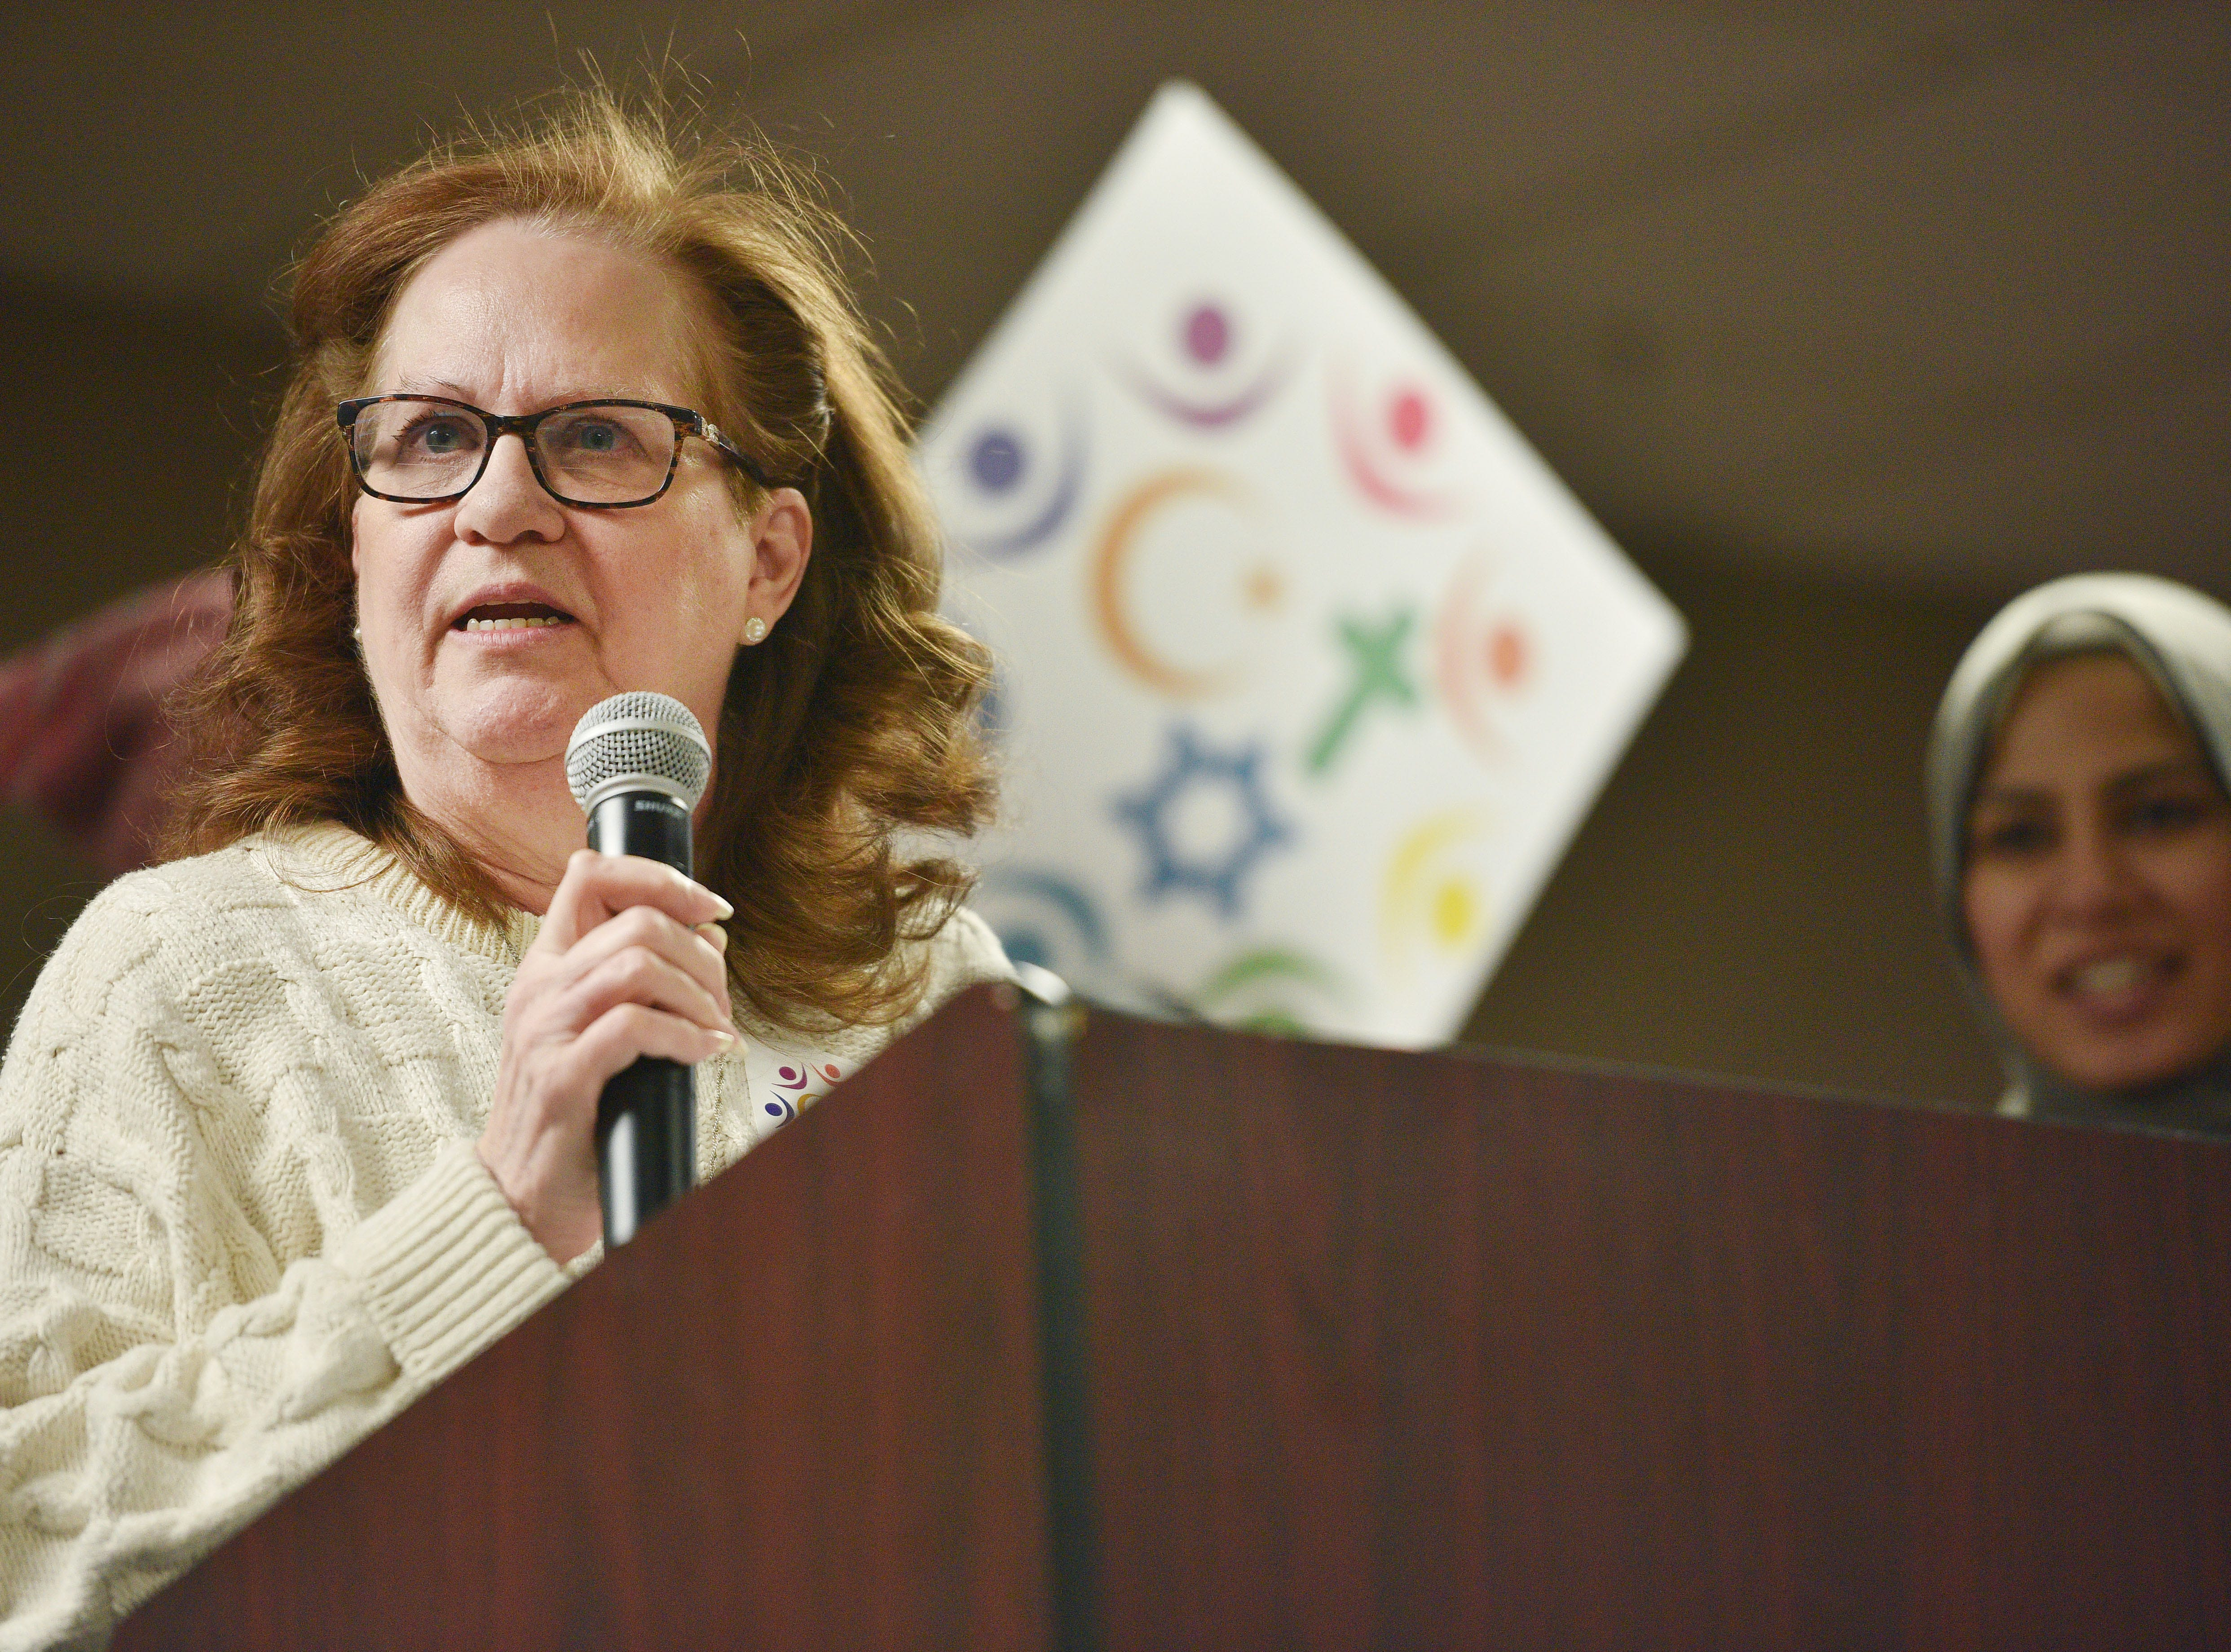 Jan Forstein speaks during the Women's March Saturday, Jan. 19, at the Downtown Sioux Falls Holiday Inn-City Centre in Sioux Falls.